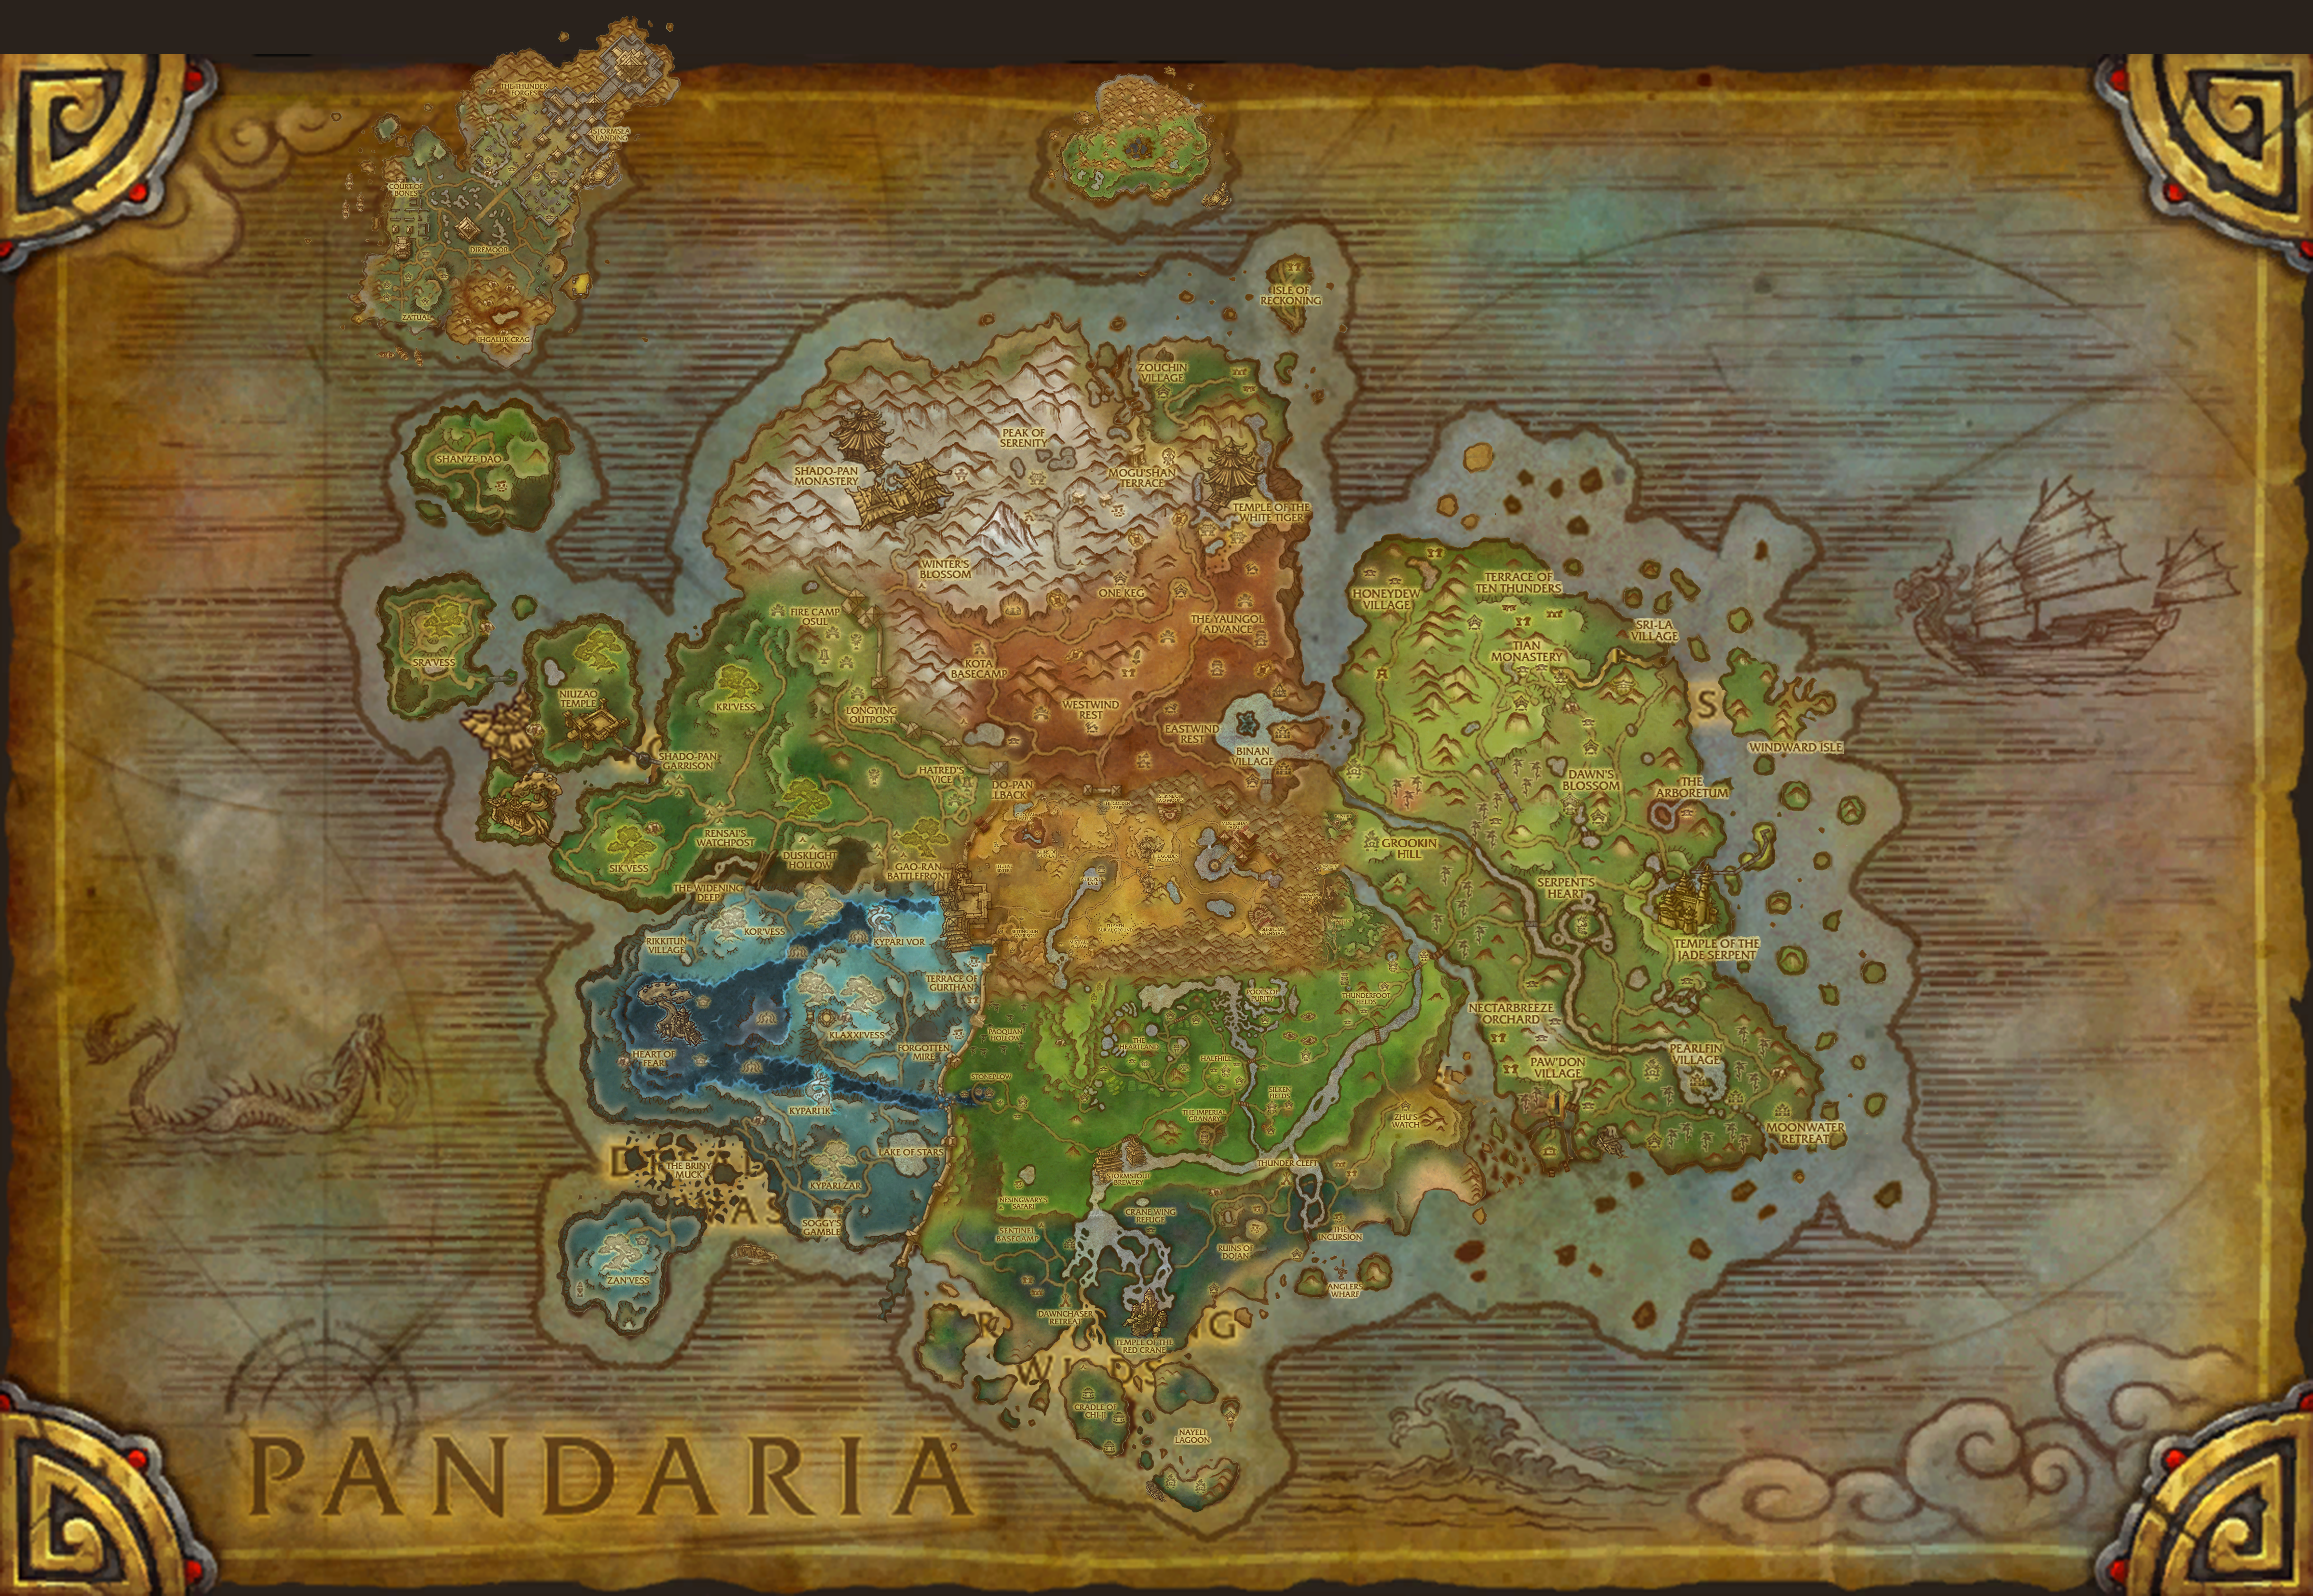 Pandaria Map Compressportnederland